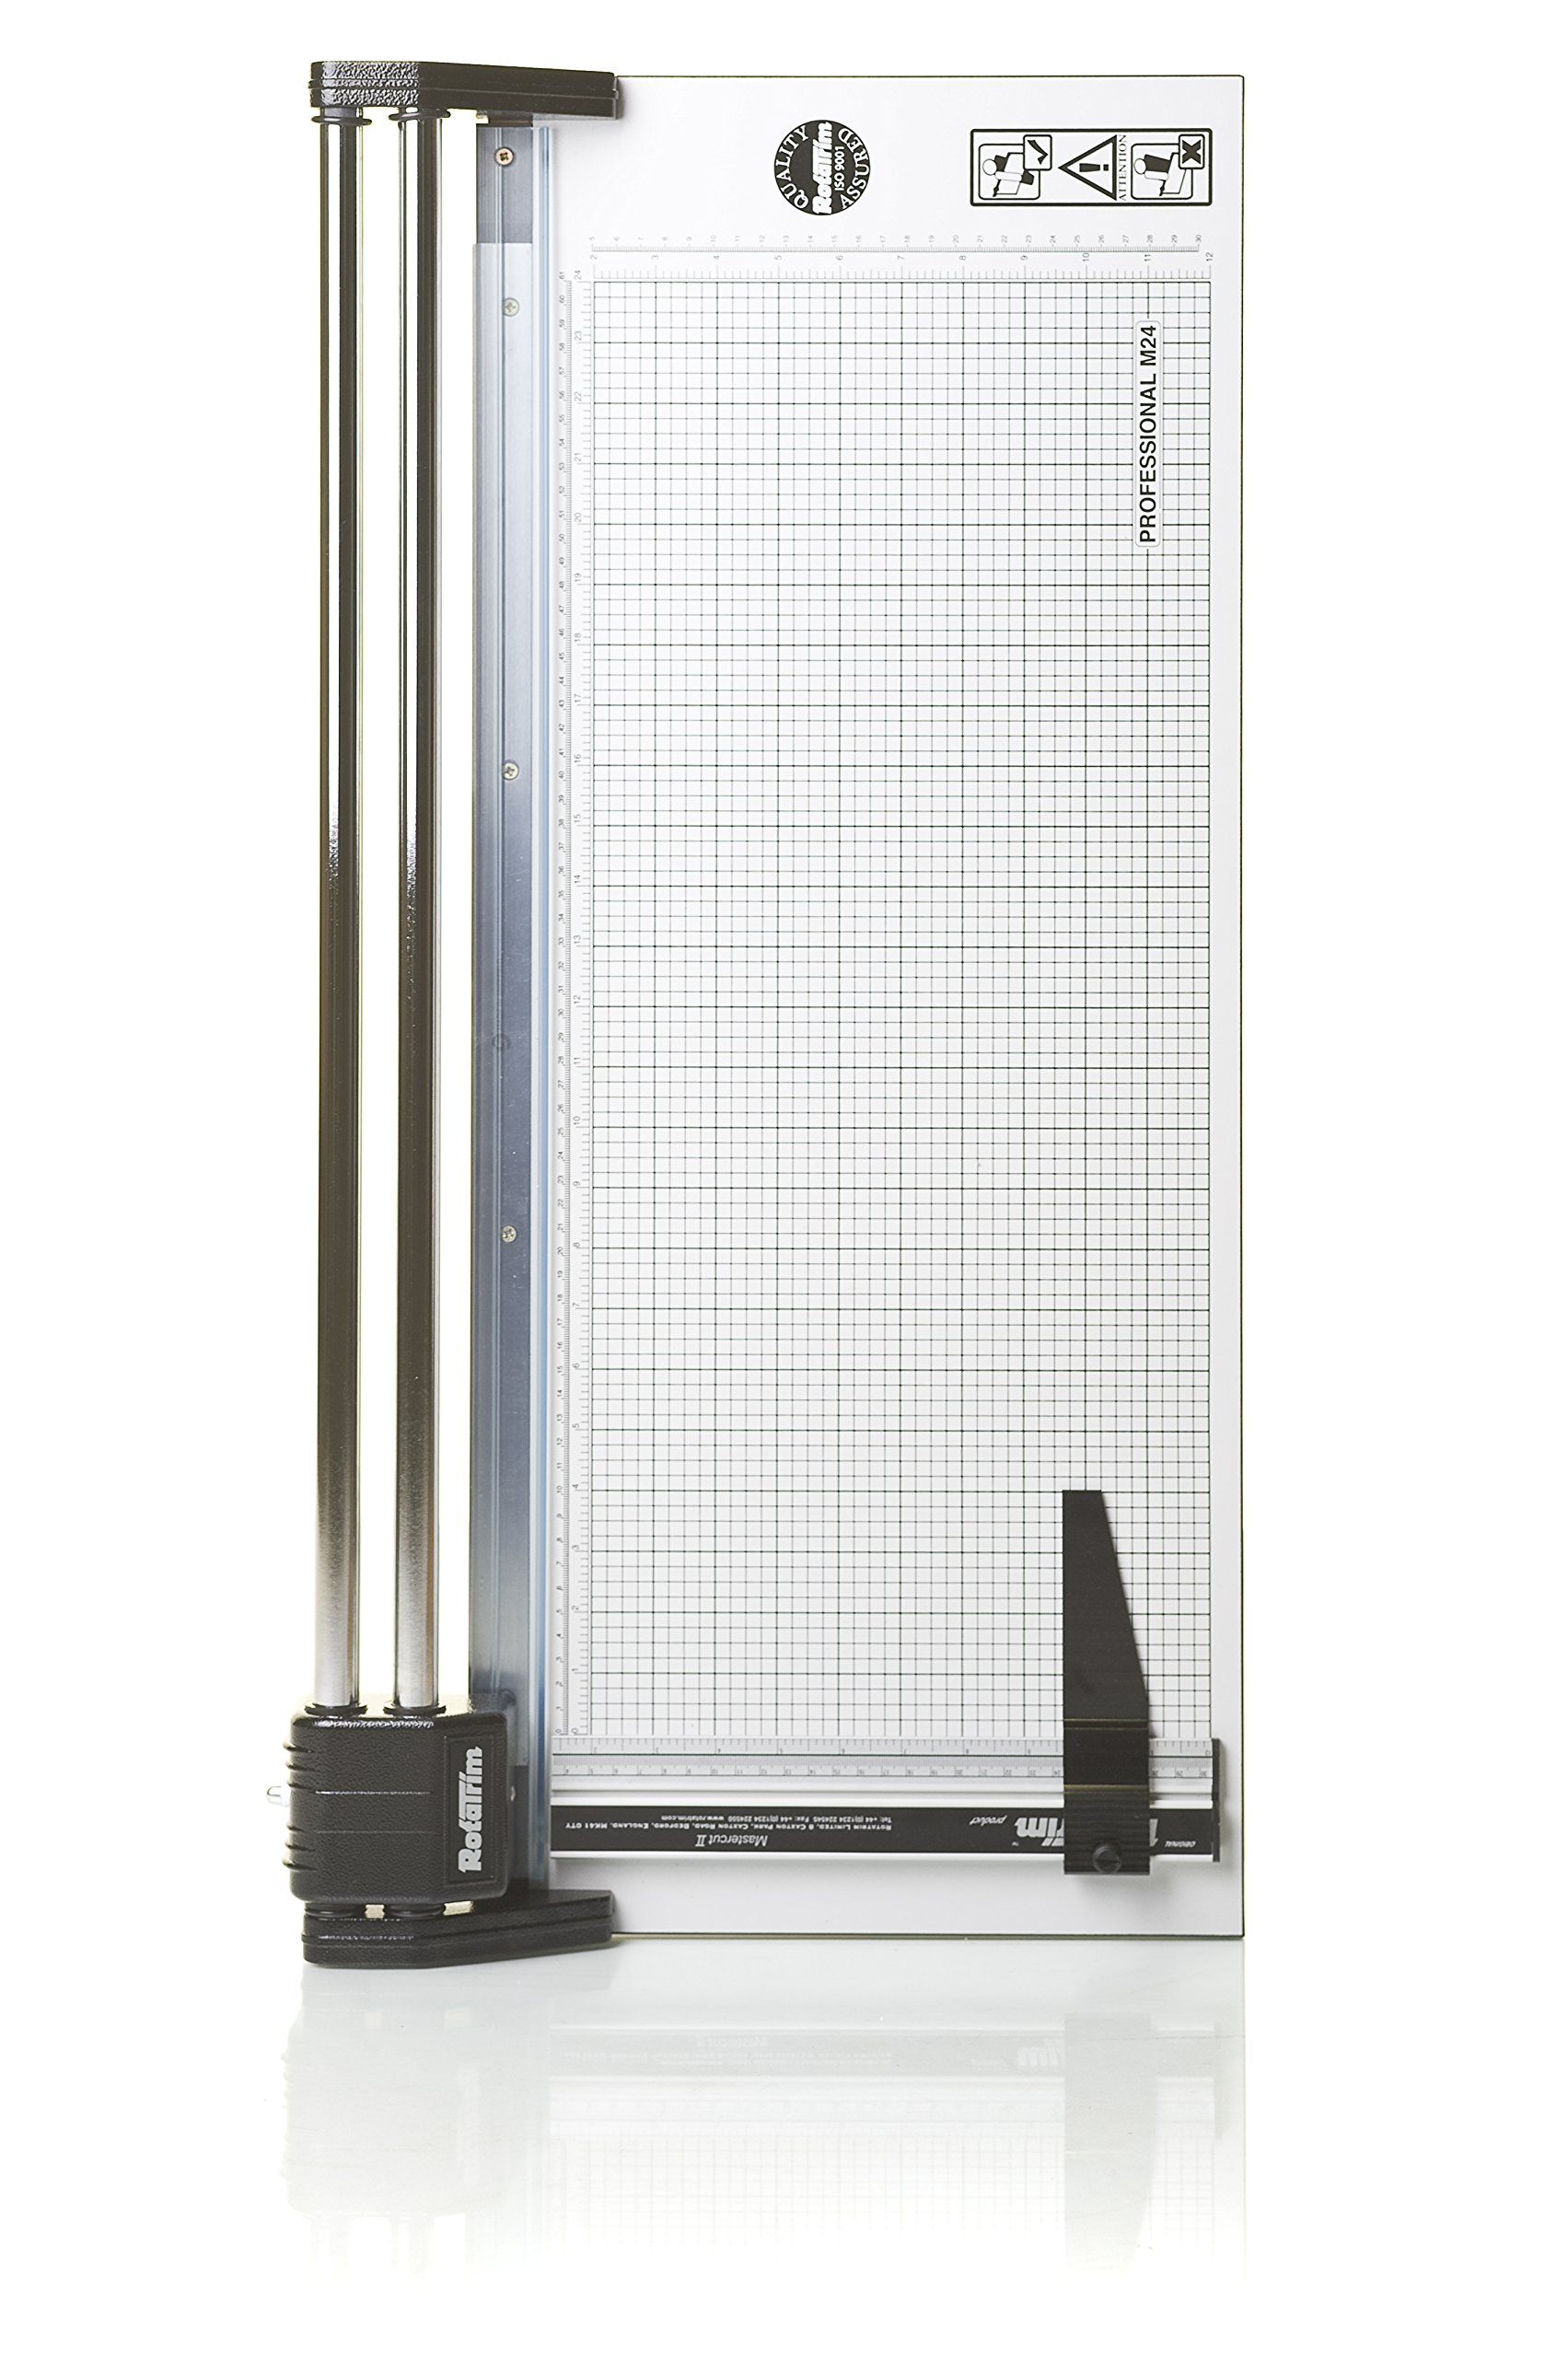 Rotatrim RC 24-Inch Cut Professional Paper Cutter/ Trimmer (RCM24) Precision Rotary Trimmer with Self-Sharpening Precision Steel Blades & Twin Chrome Steel Guide Rails by Rotatrim